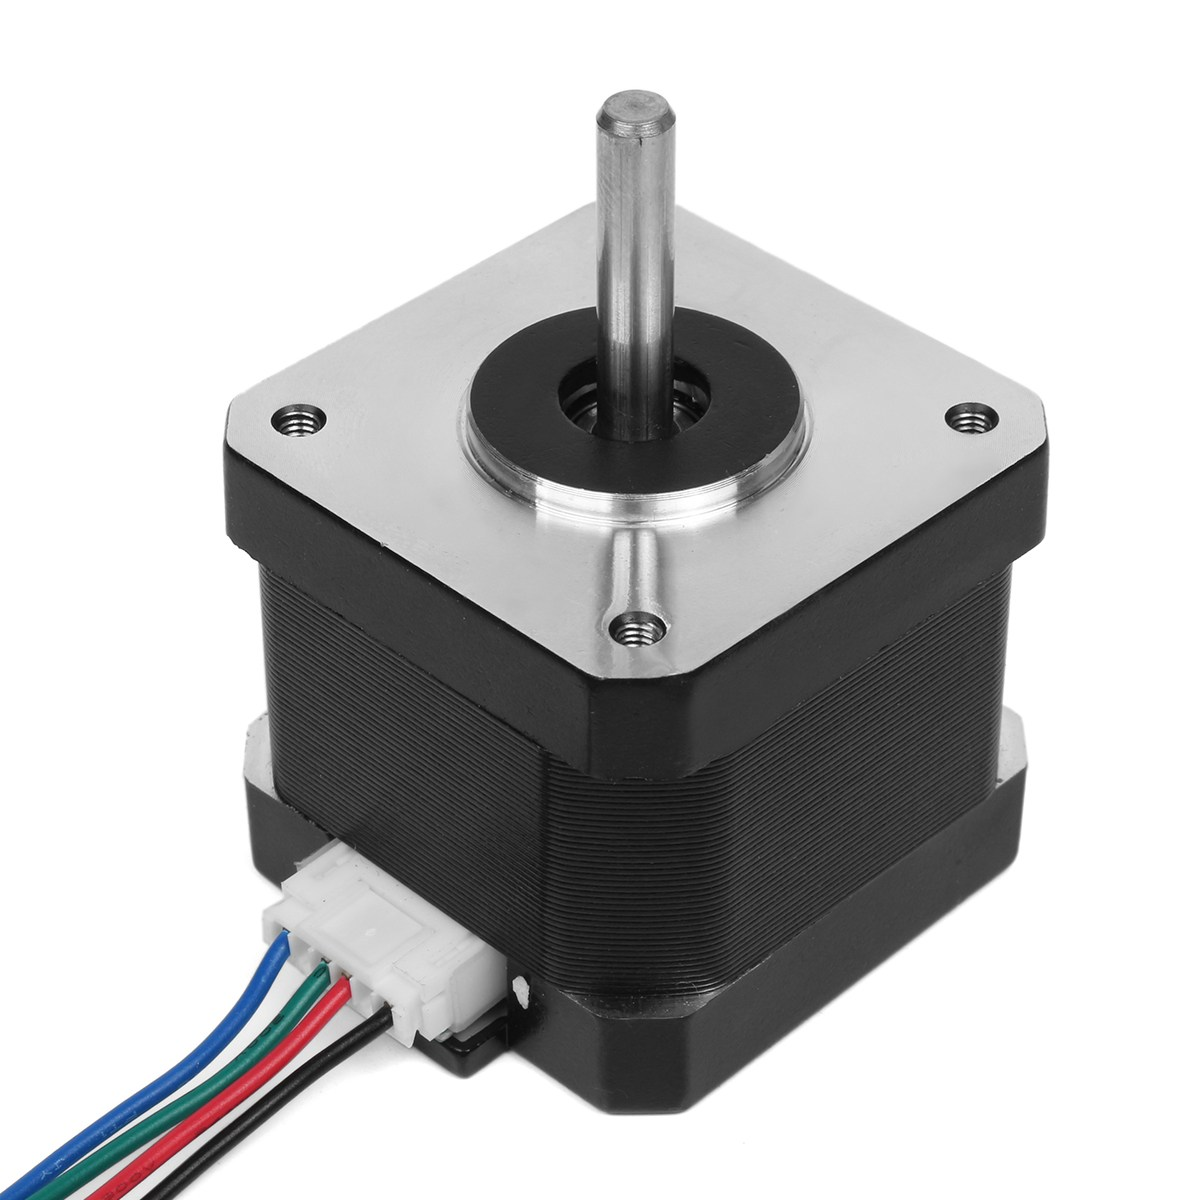 NEMA17 Stepper Motor With 400mm T8 Lead Screw Mounted Ball Bearing And Shaft Coupling For 3D Printer XYZ nema23 linear stepper w 310mm tr10 4 lead screw for 3d printer desktop straight screw motor